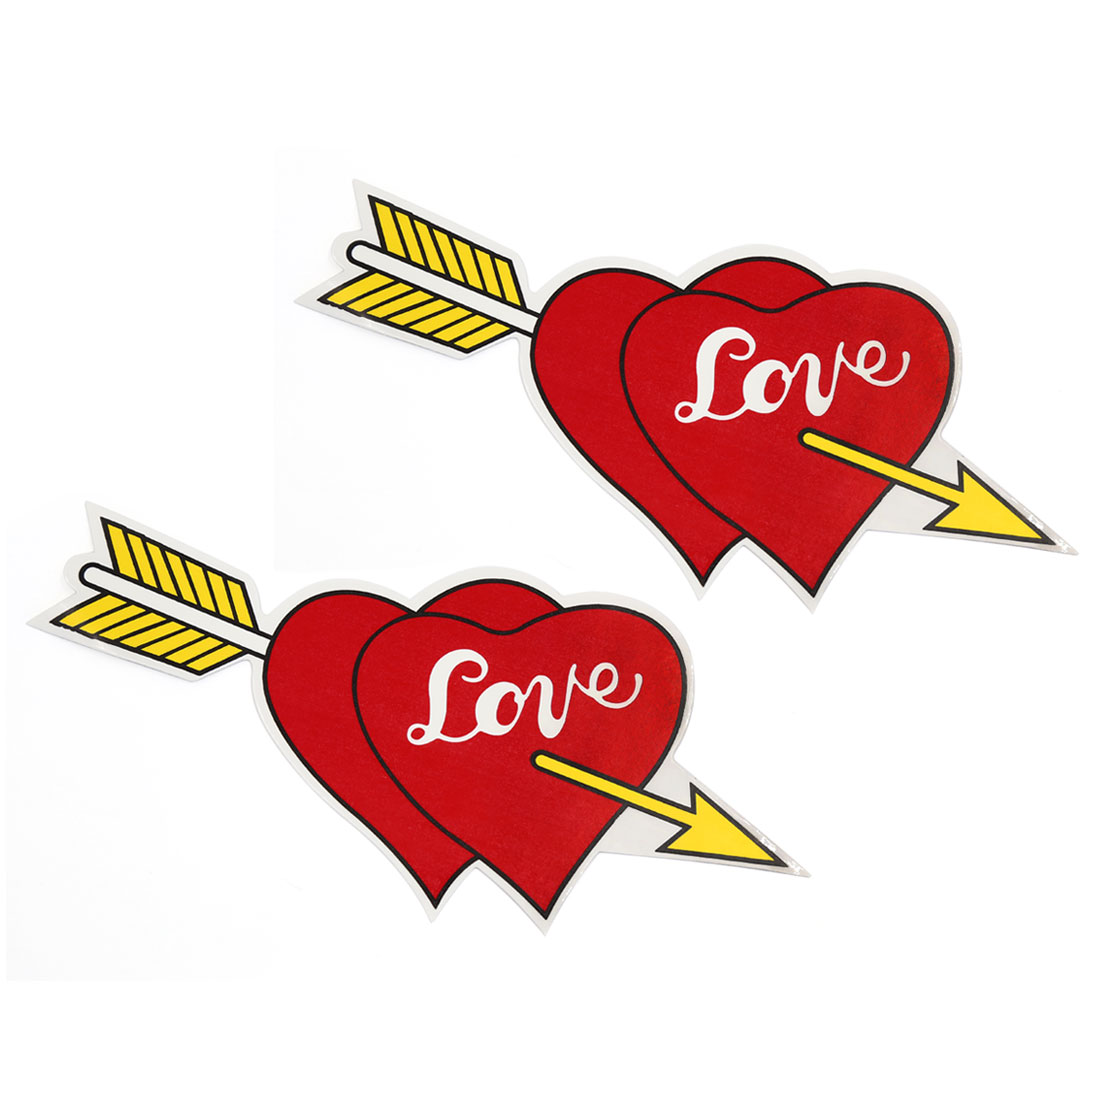 Arrow Through Hearts Design Car Sticker Auto Exterior Adhesive Decal Yellow Red 2 Pcs